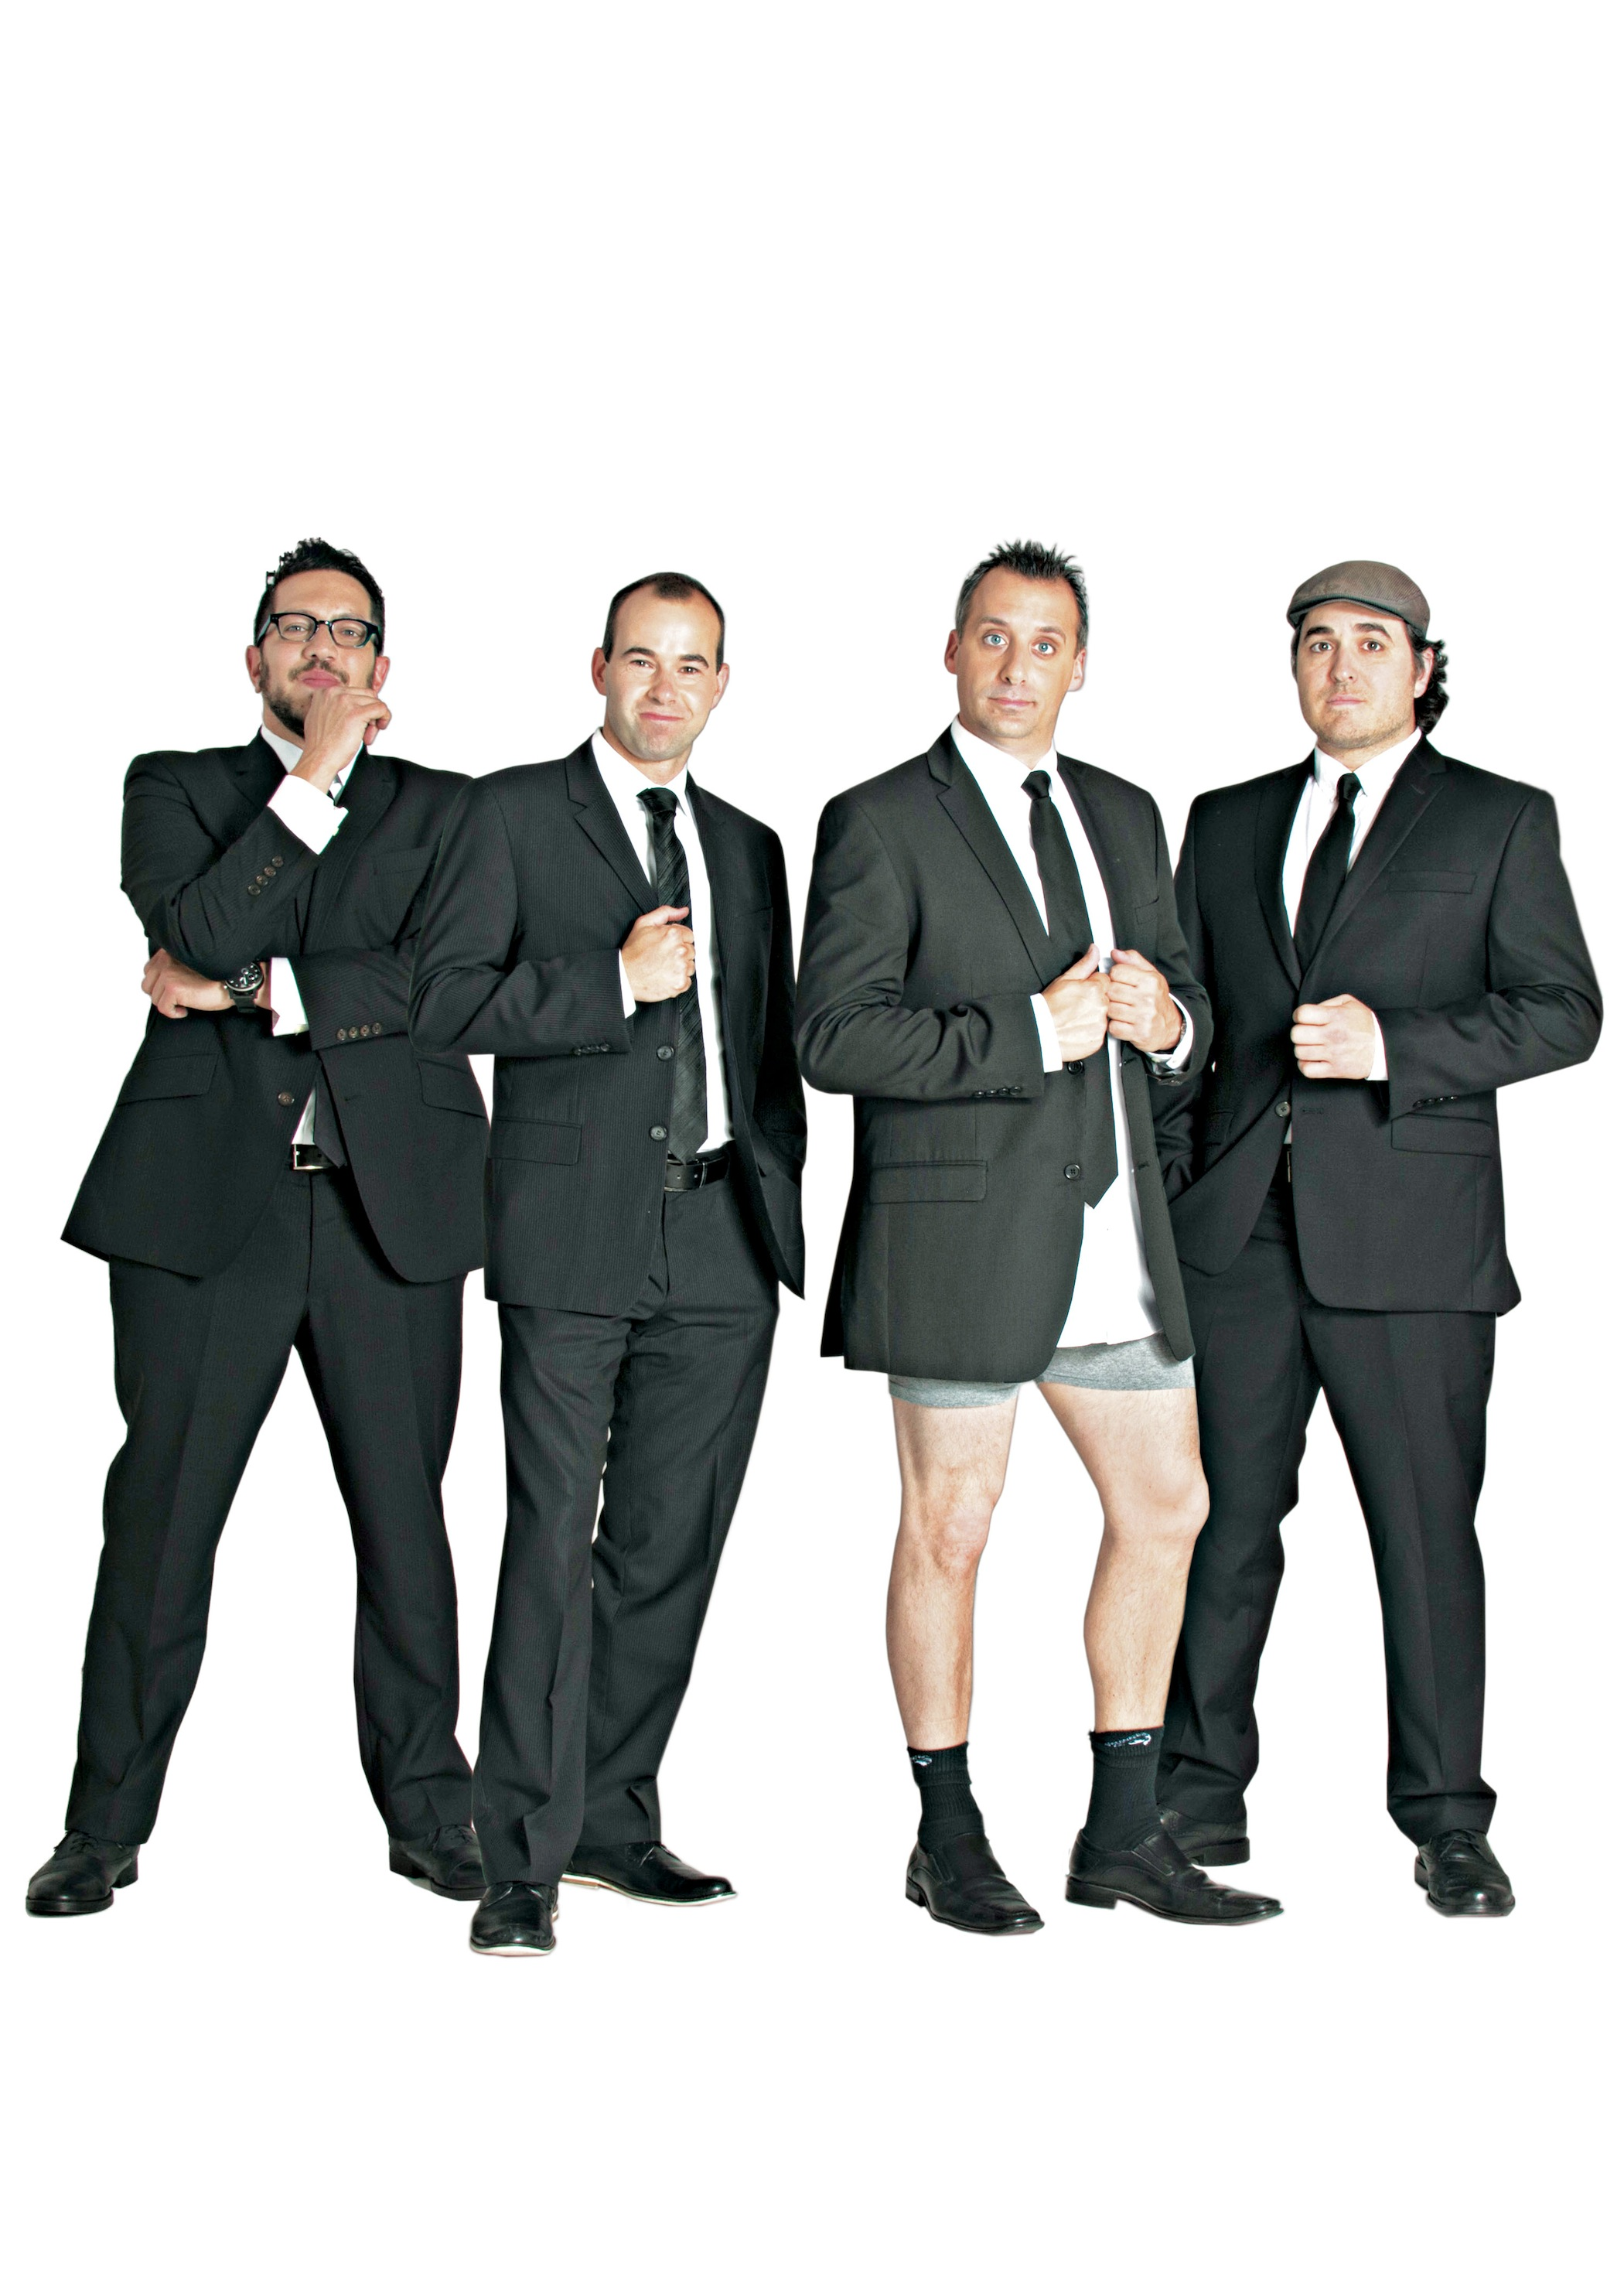 Charitybuzz meet the impractical jokers featuring the tenderloins charitybuzz meet the impractical jokers featuring the tenderloins wit lot 492941 m4hsunfo